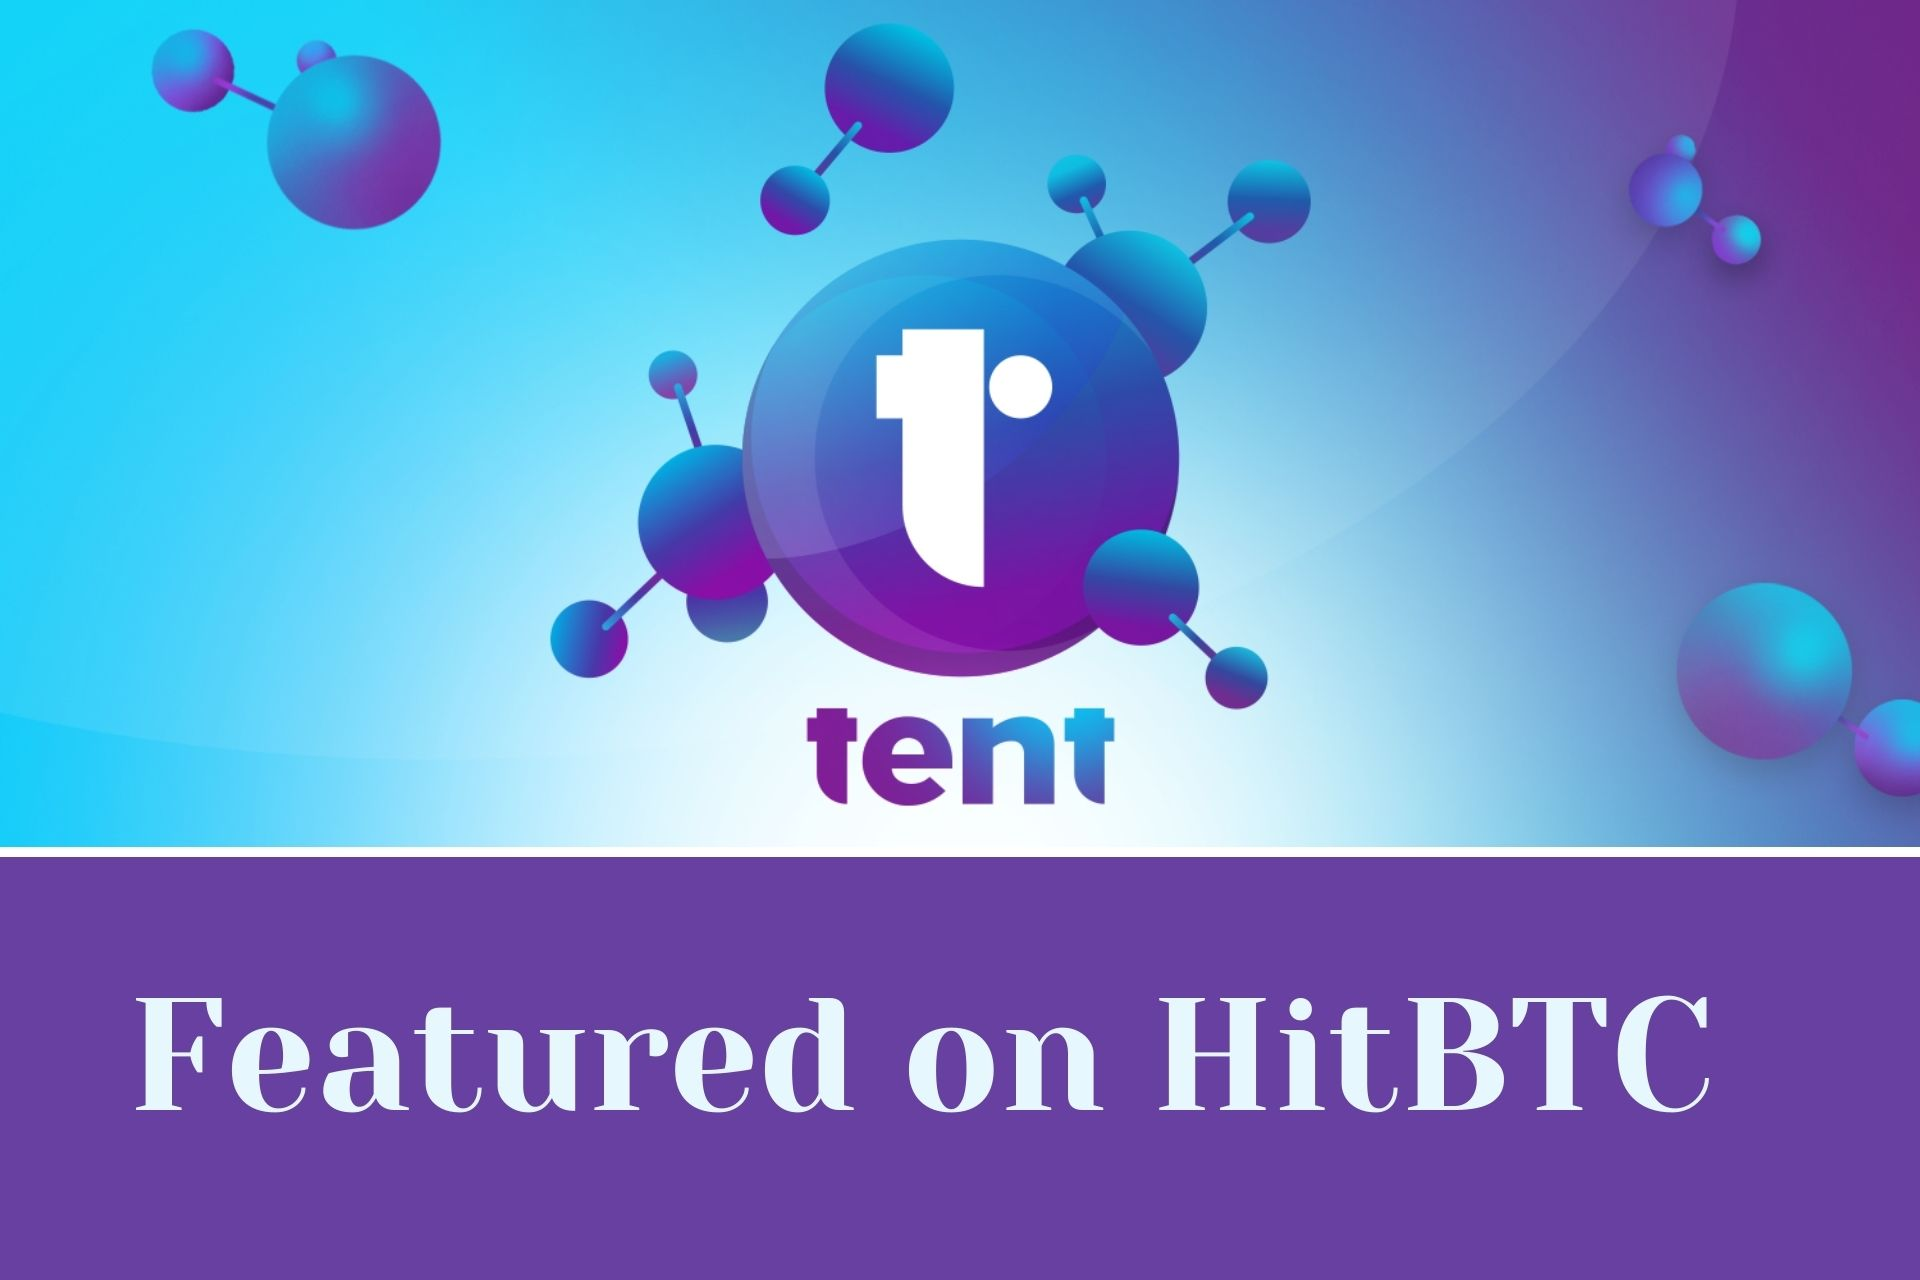 TENT Now Featured on HitBTC in a Key Move for Growing Cryptocurrency Project